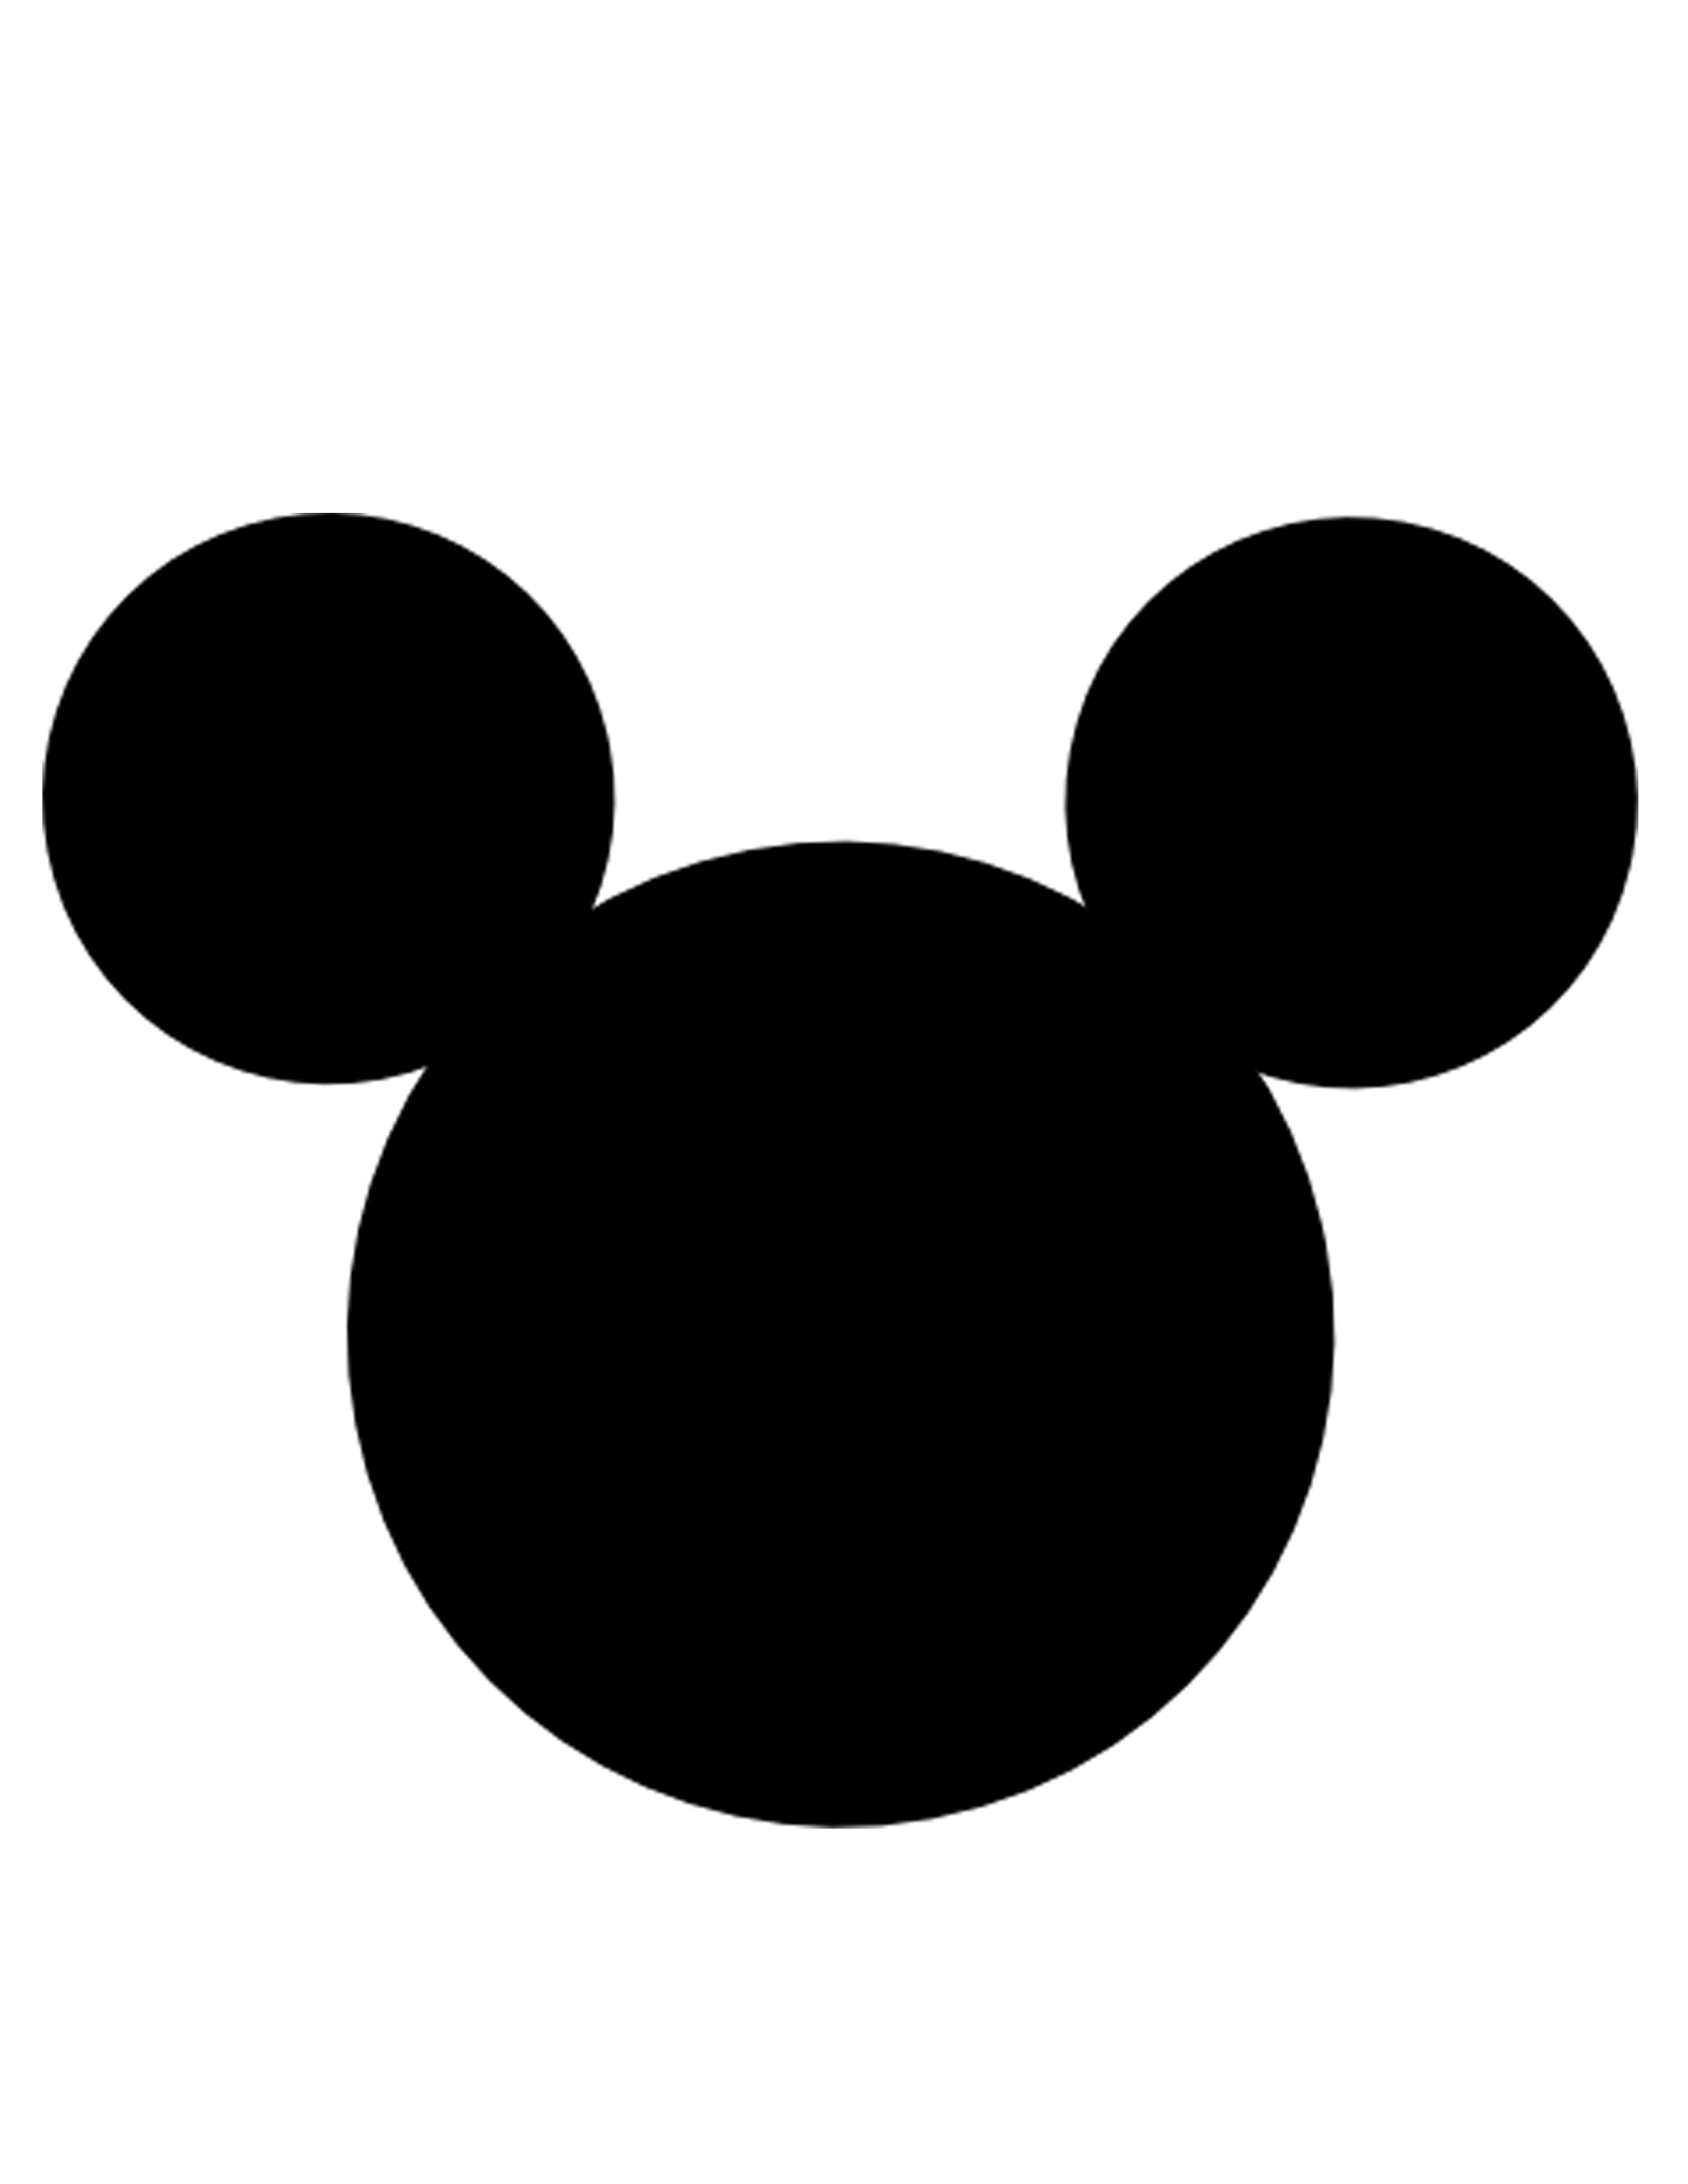 Black mickey mouse head clipart image royalty free stock Mickey Mouse Face Image   Free download best Mickey Mouse Face Image ... image royalty free stock